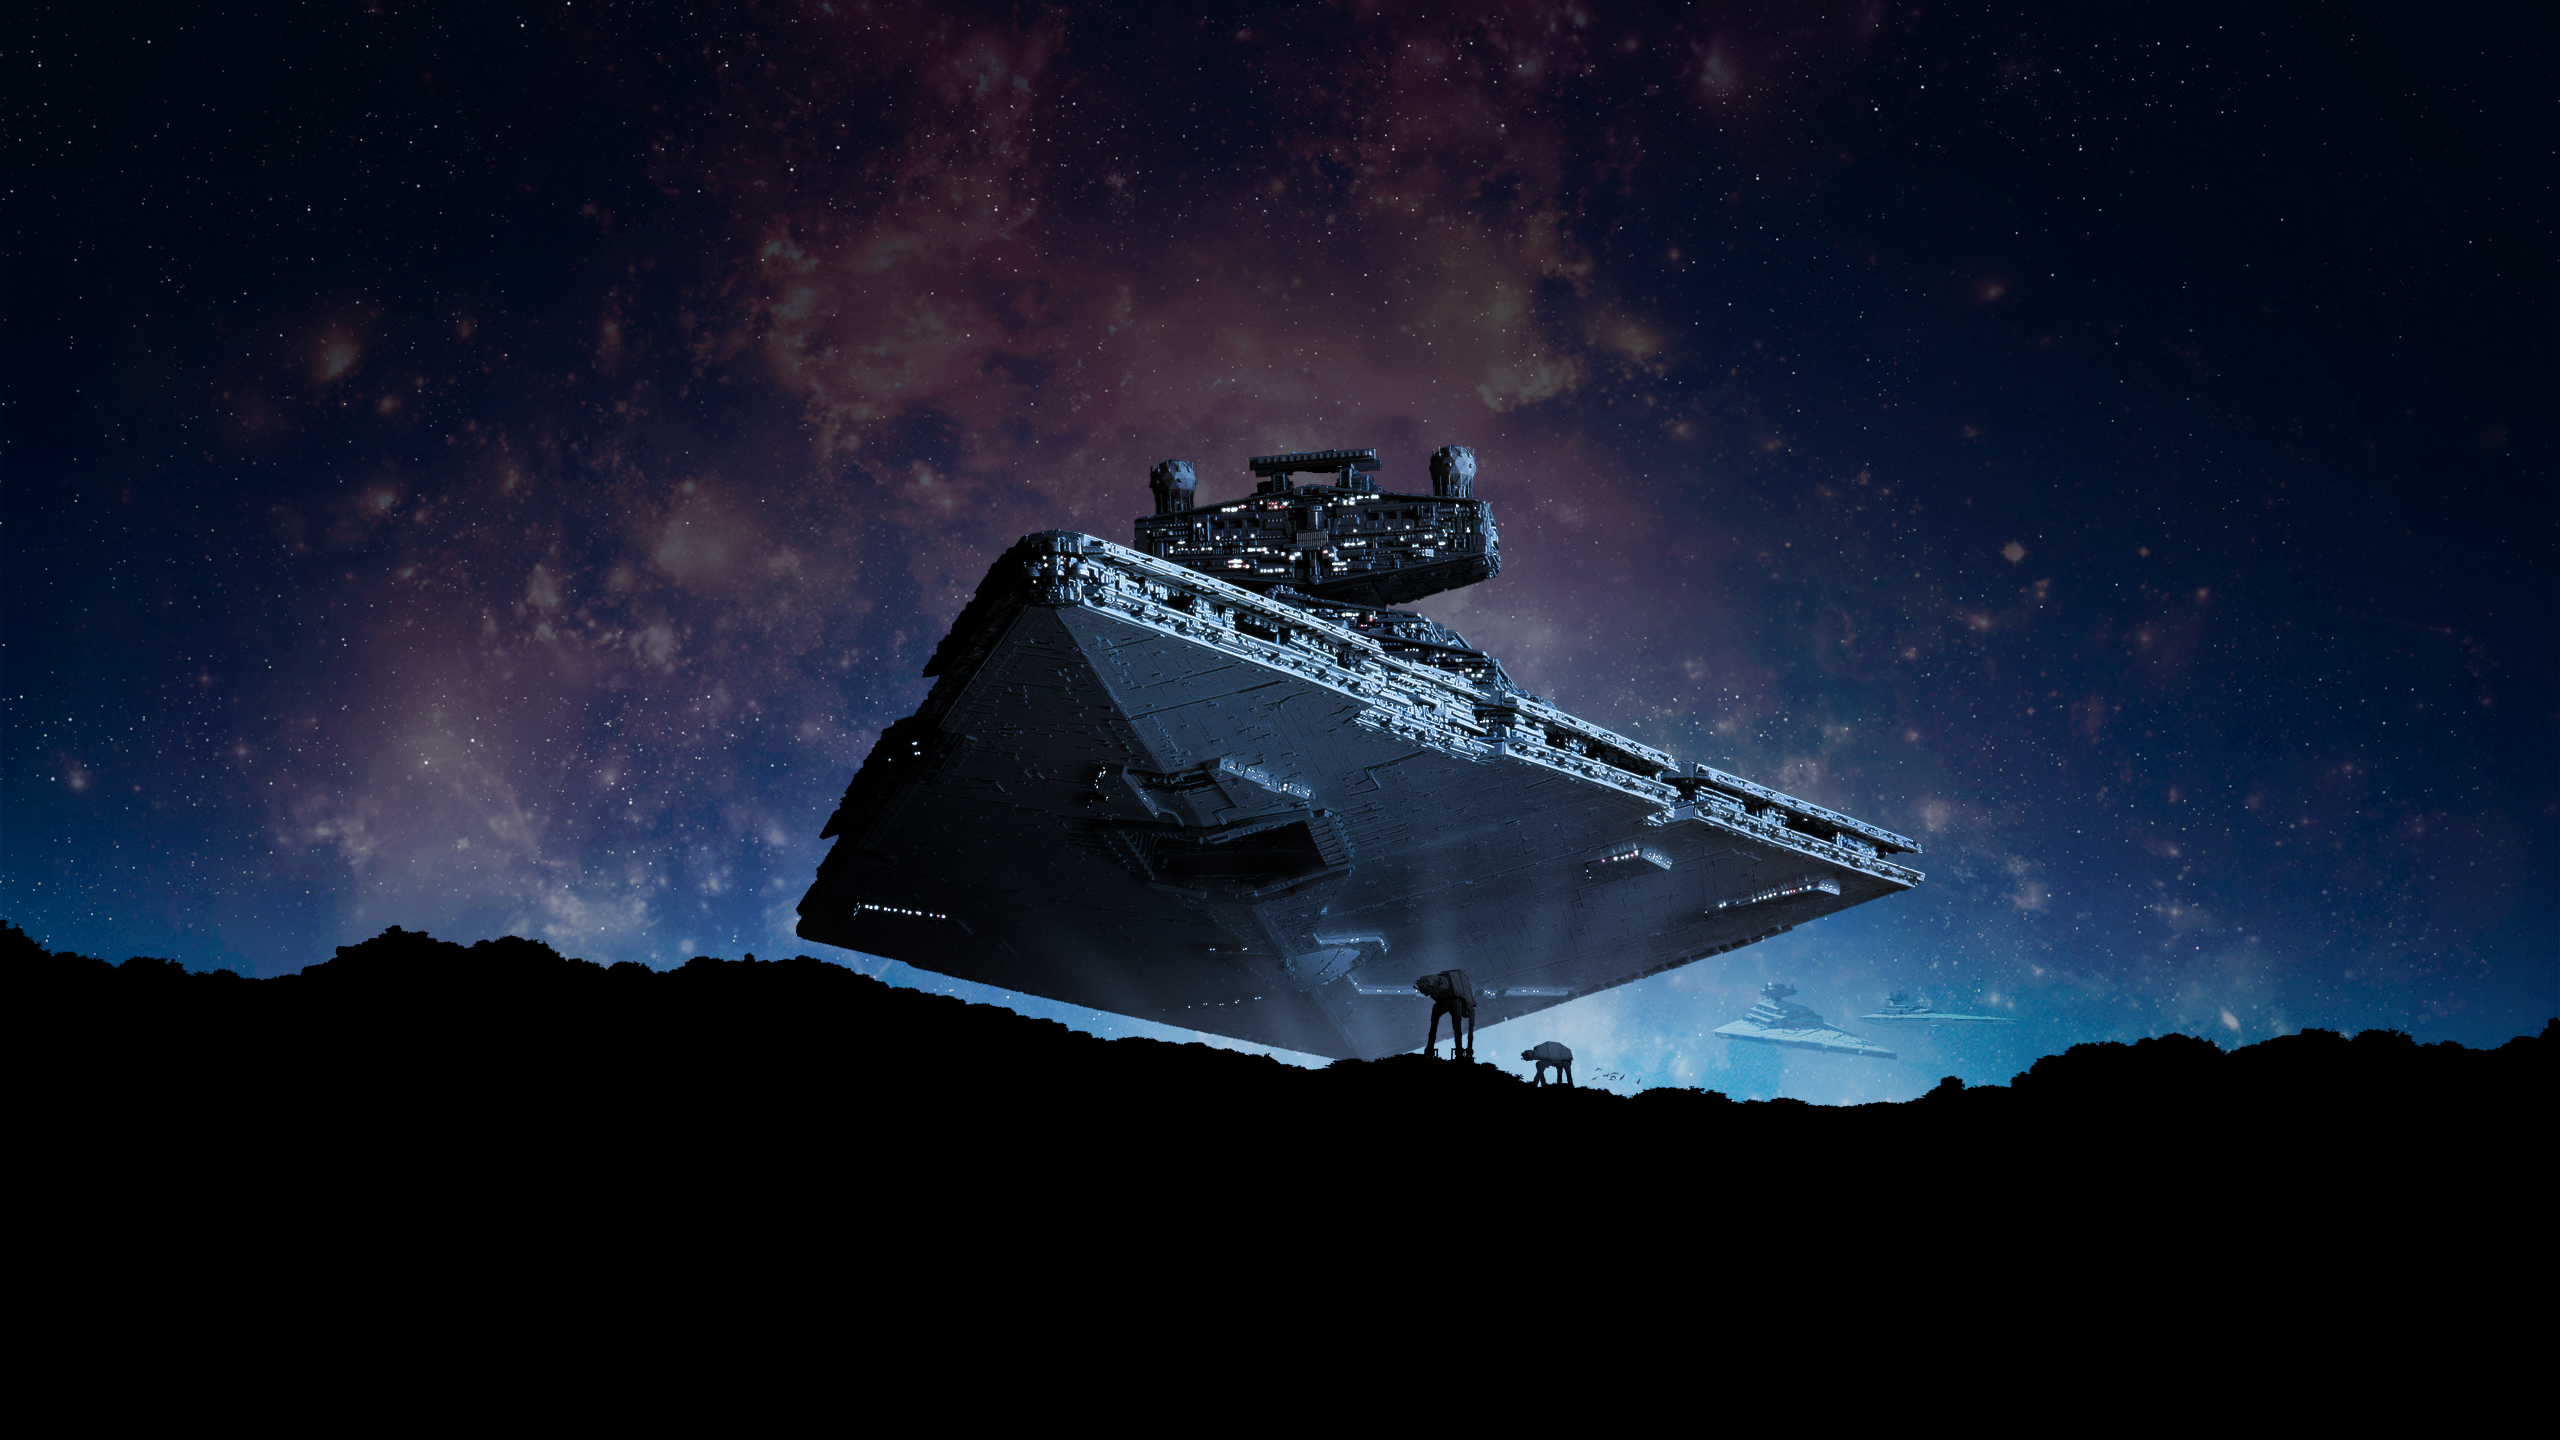 Star Wars Rogue One Wallpaper: Rogue One Wallpaper (No Death Star) By RockLou